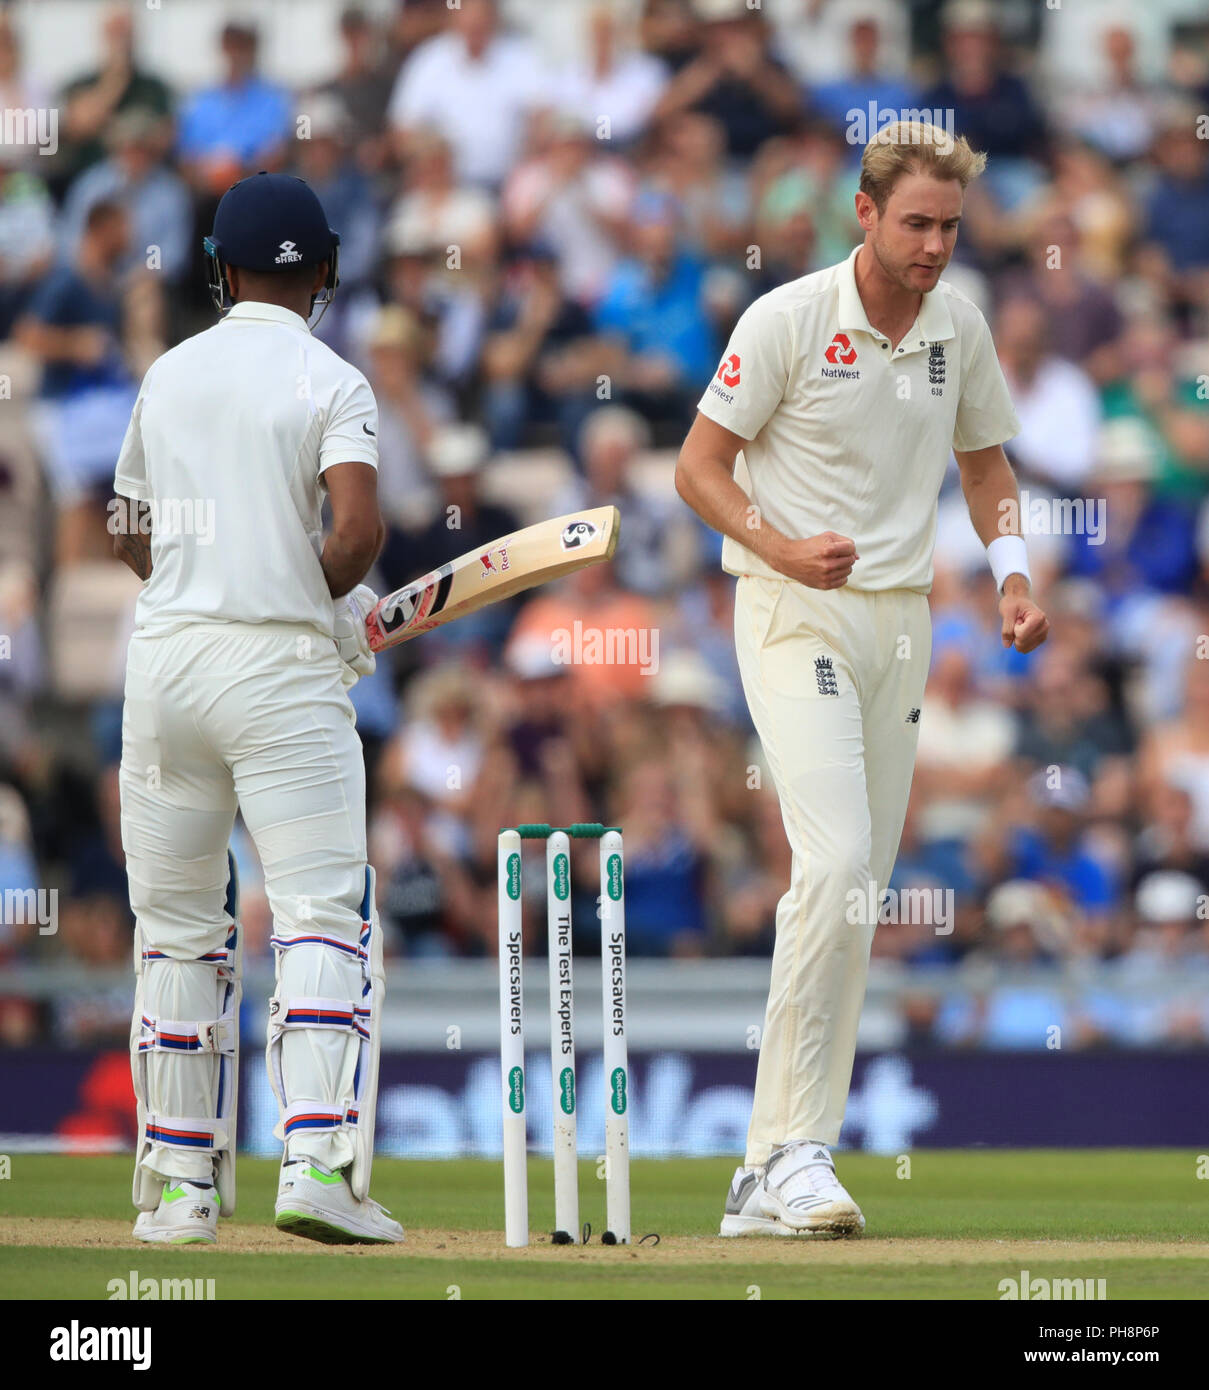 England's Stuart Broad celebrates taking the wicket of India's KL Rahul during day two of the fourth test at the AGEAS Bowl, Southampton. - Stock Image